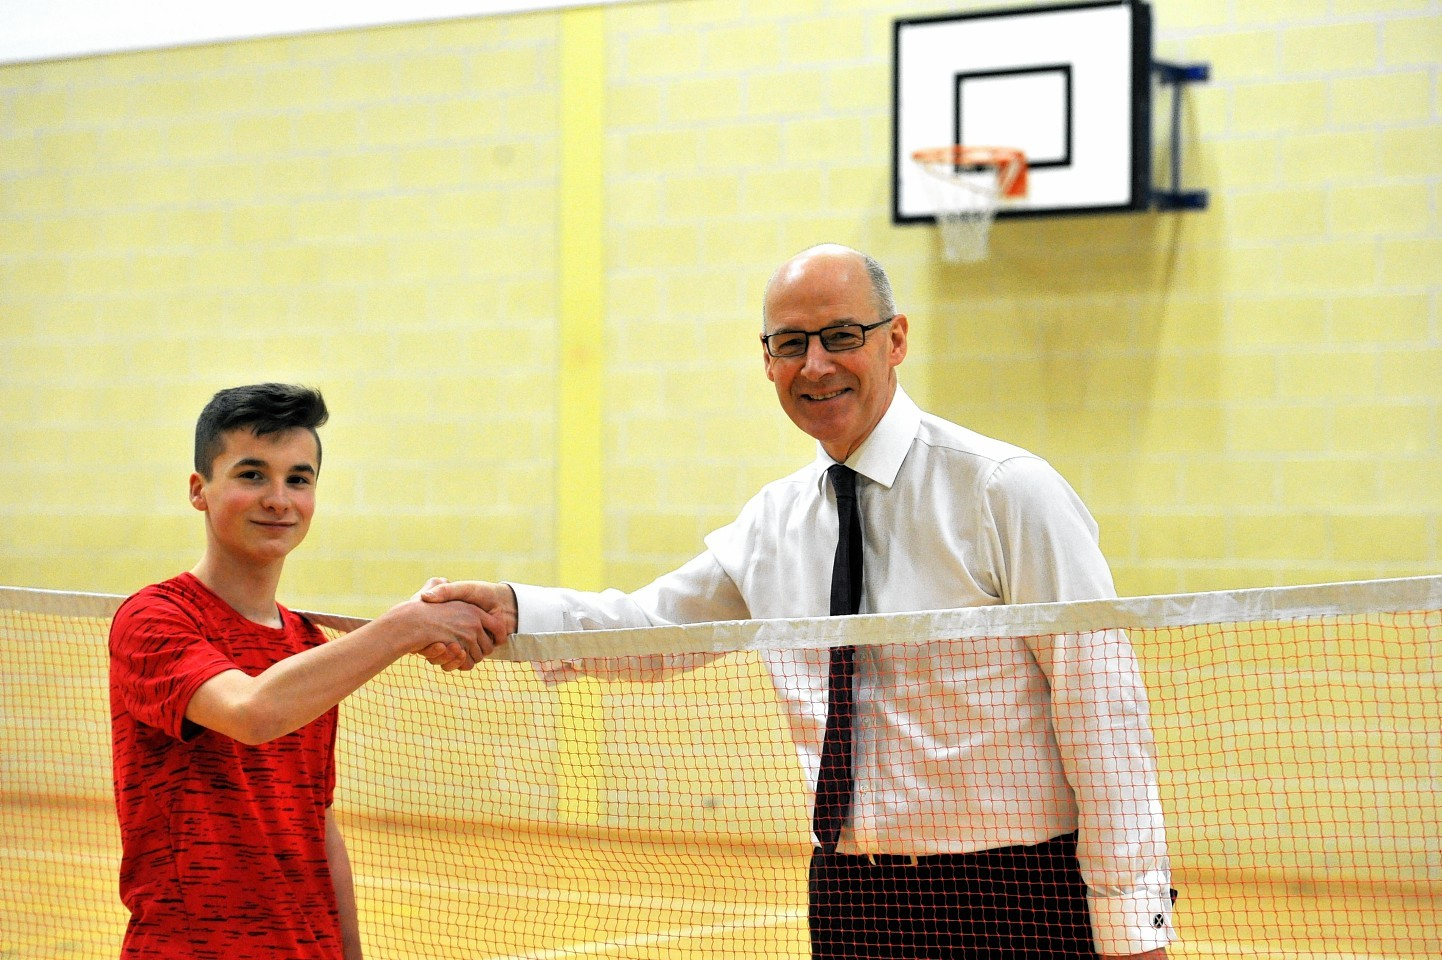 John Swinney, right, with Sean McCann, an S3 pupil who beat him in a short badminton game. Pictures by Gordon Lennox